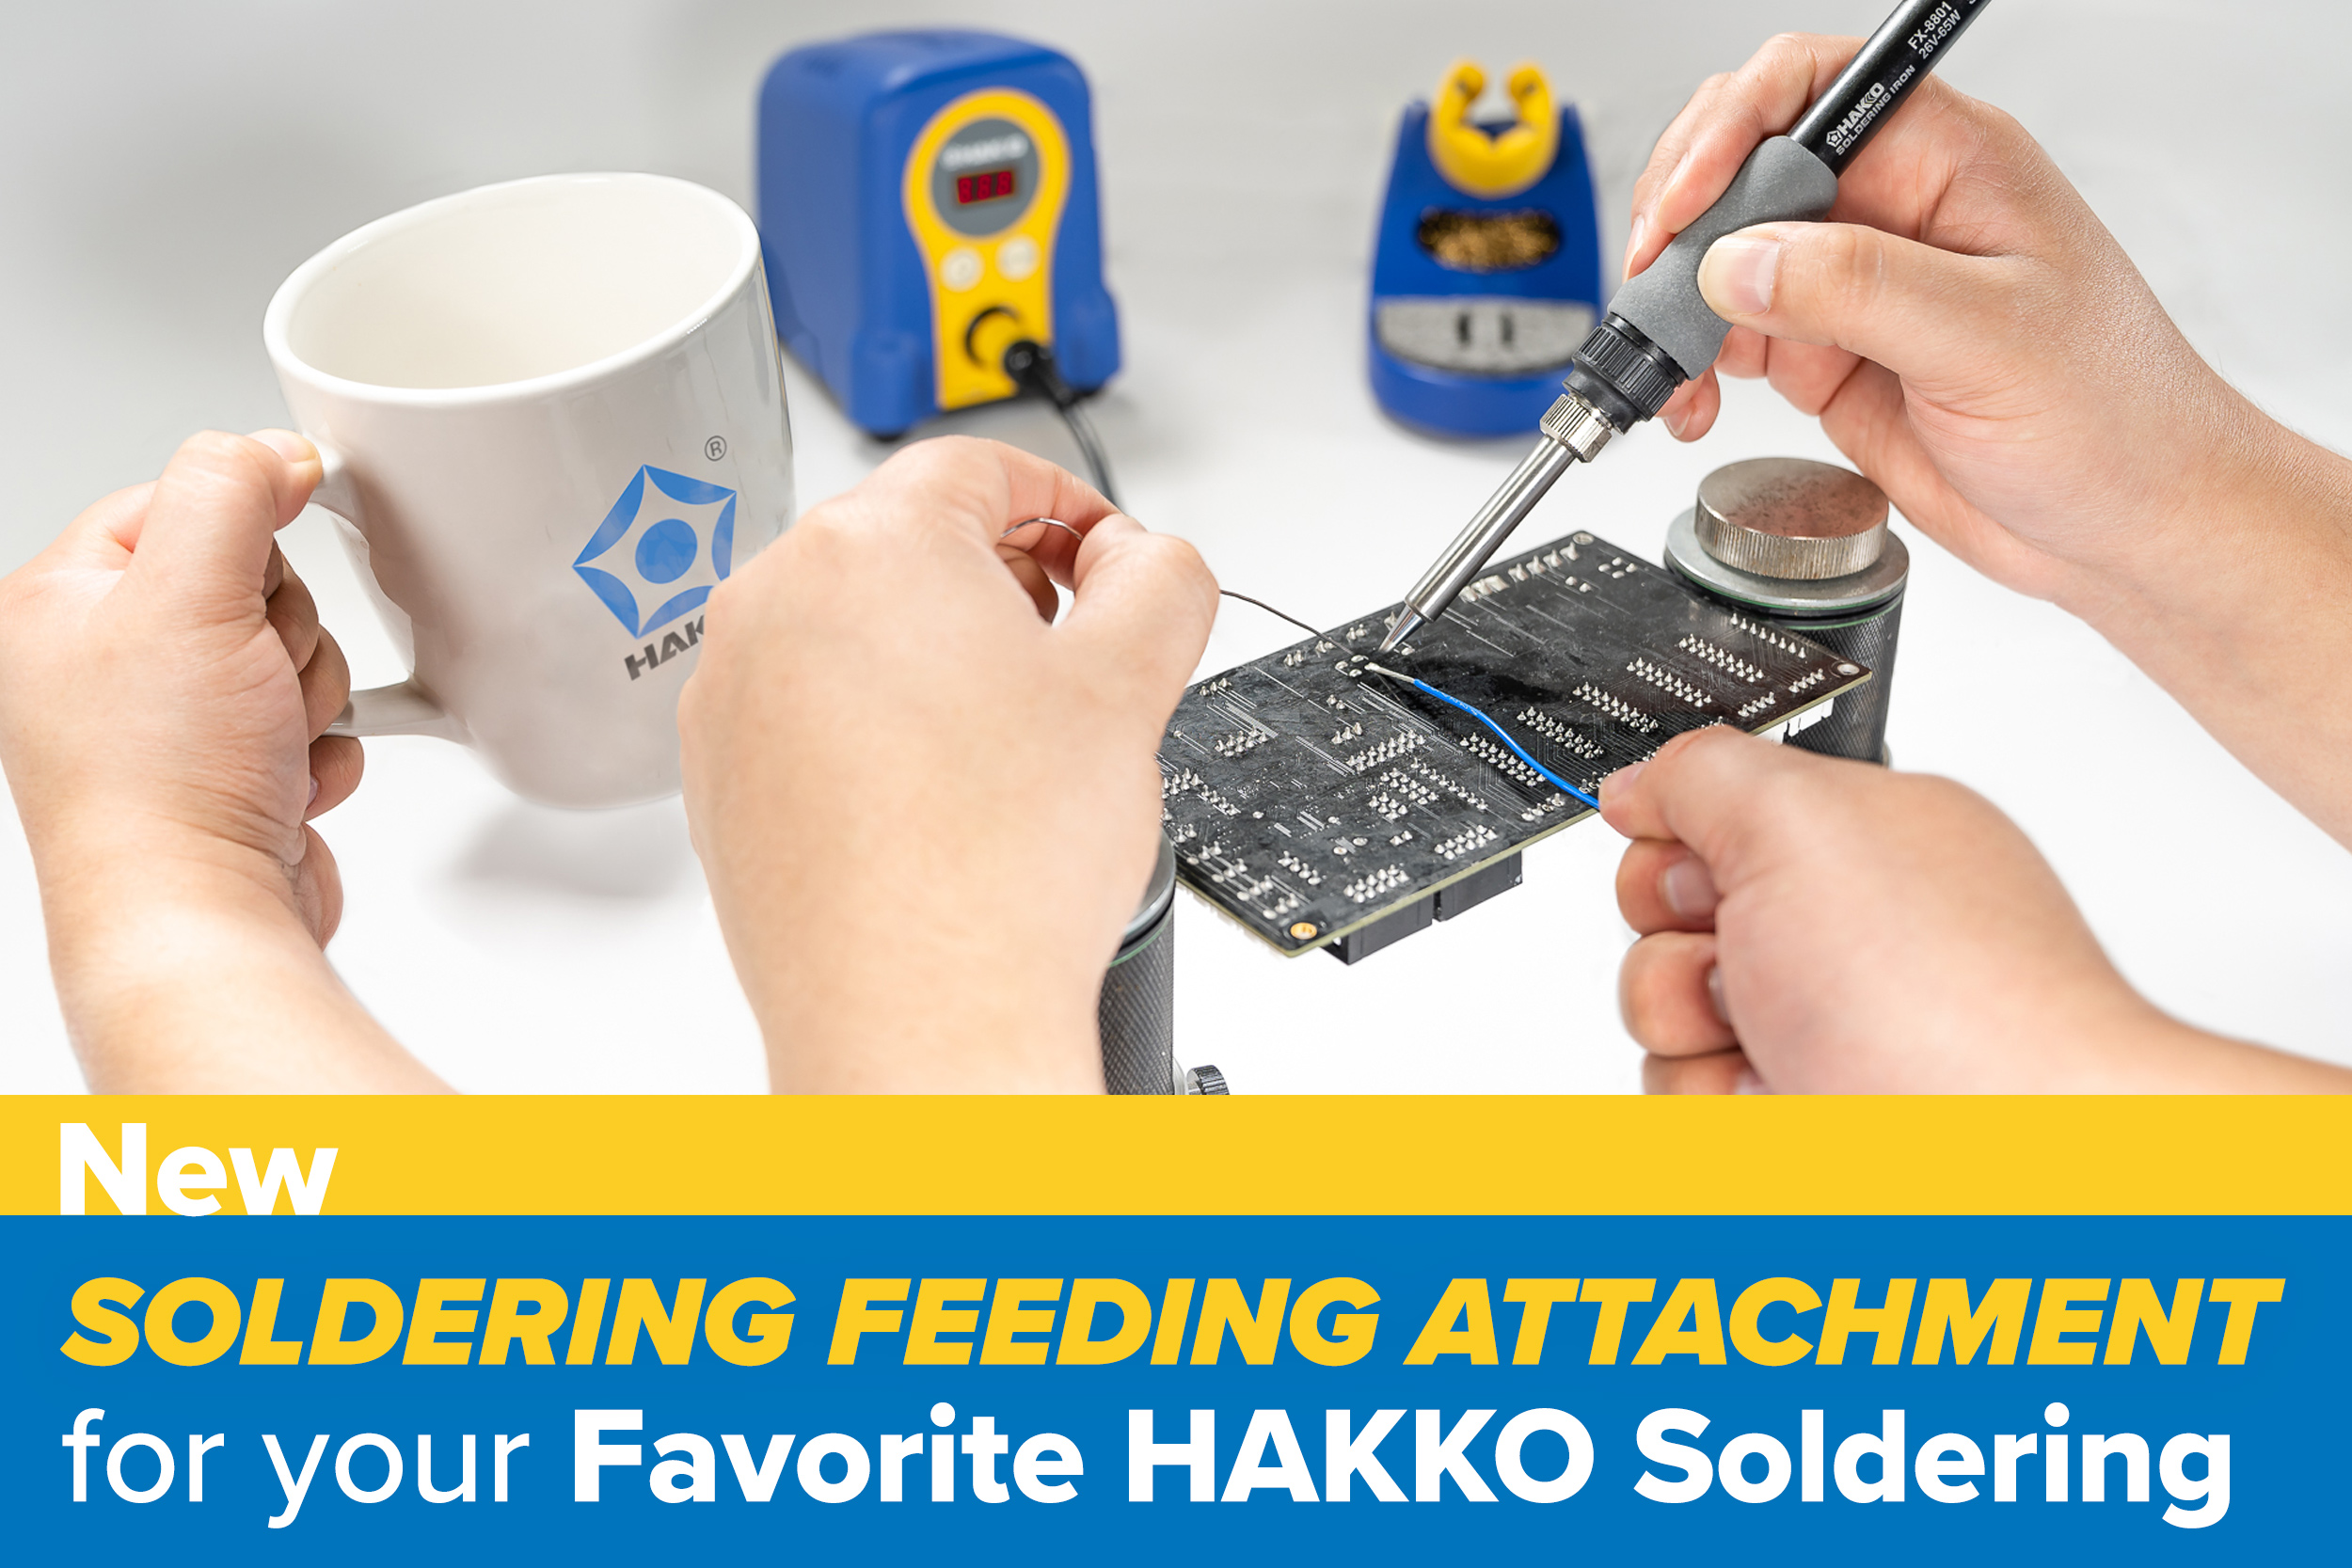 New - Solder Feeding Attachment for your Favorite HAKKO Soldering Station